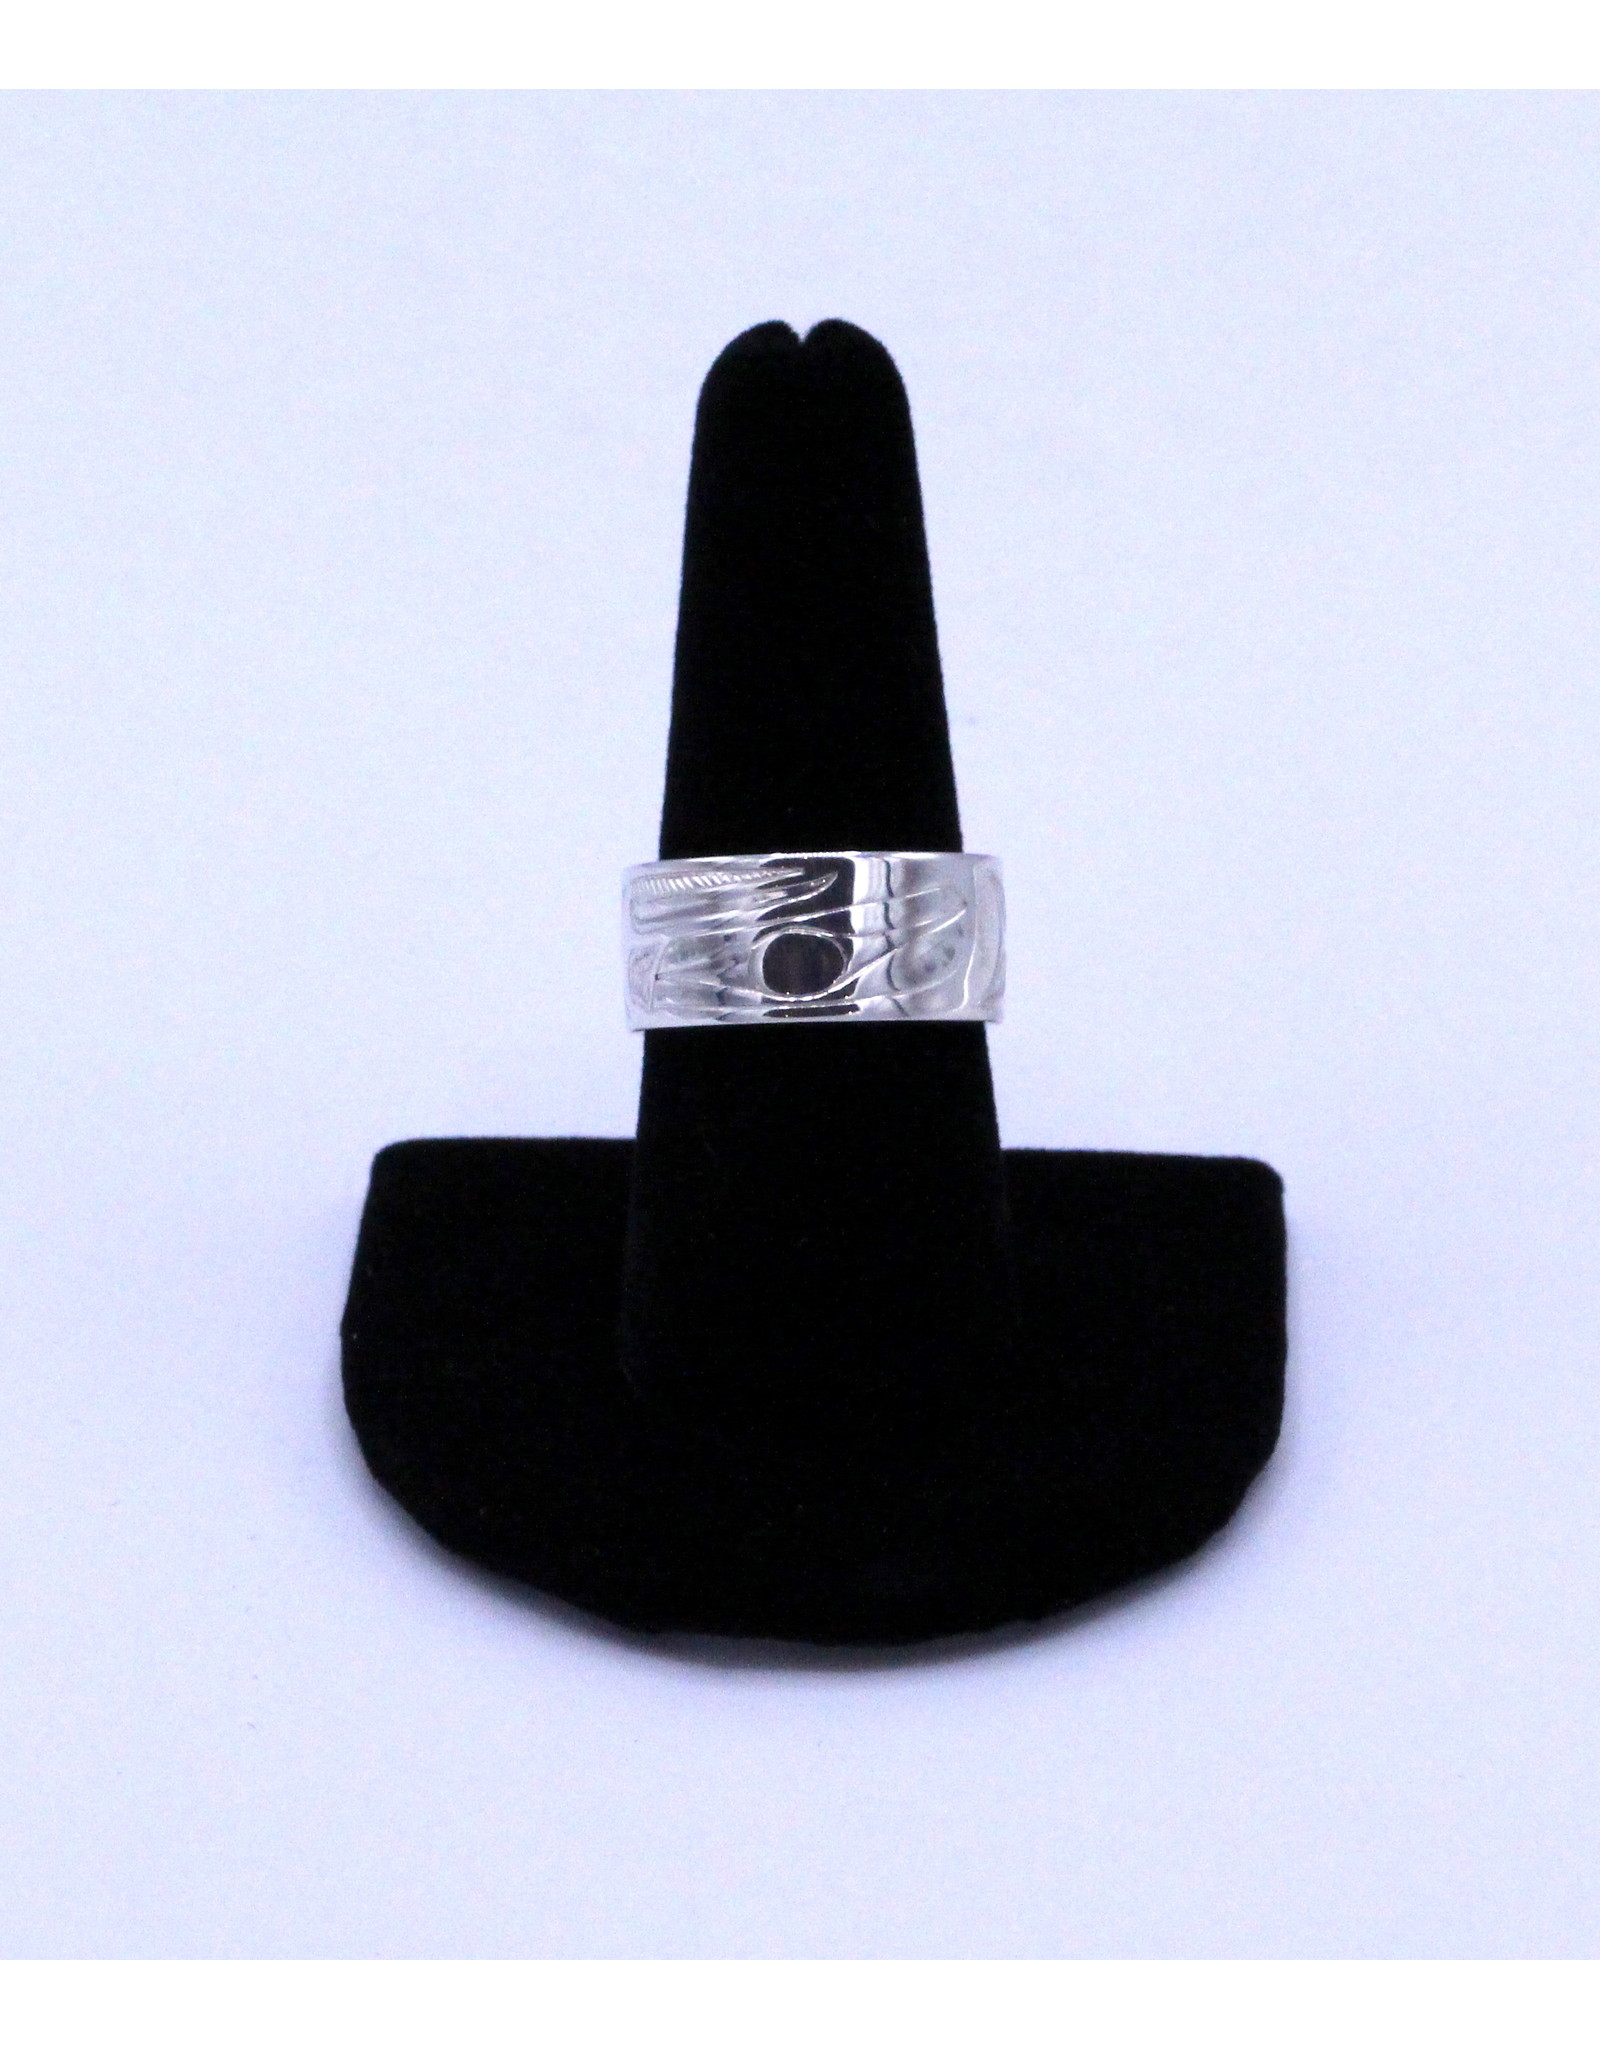 Eagle Ring by Nusmata - NR03